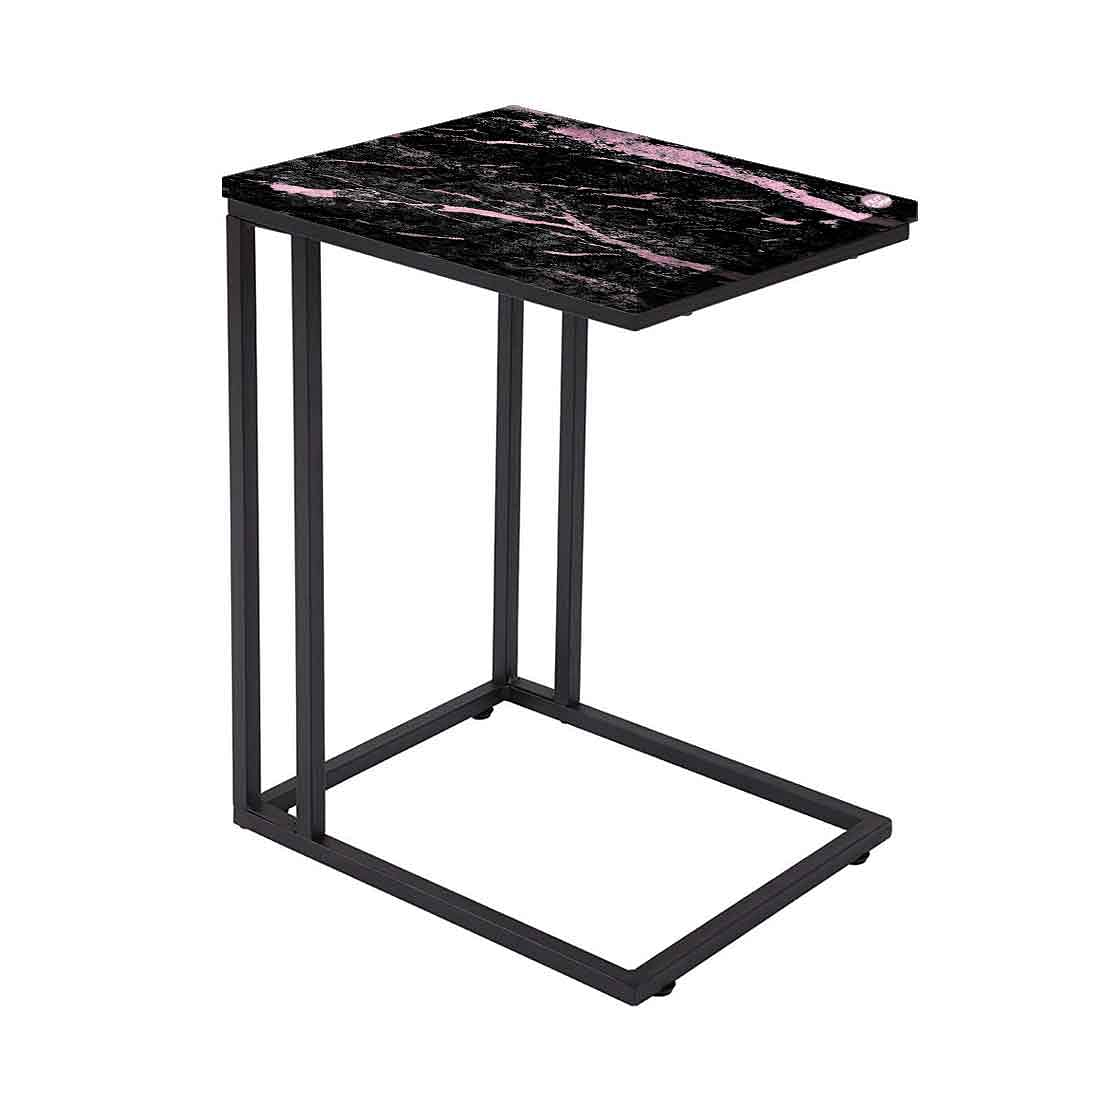 Black Marble C Table For Sofa